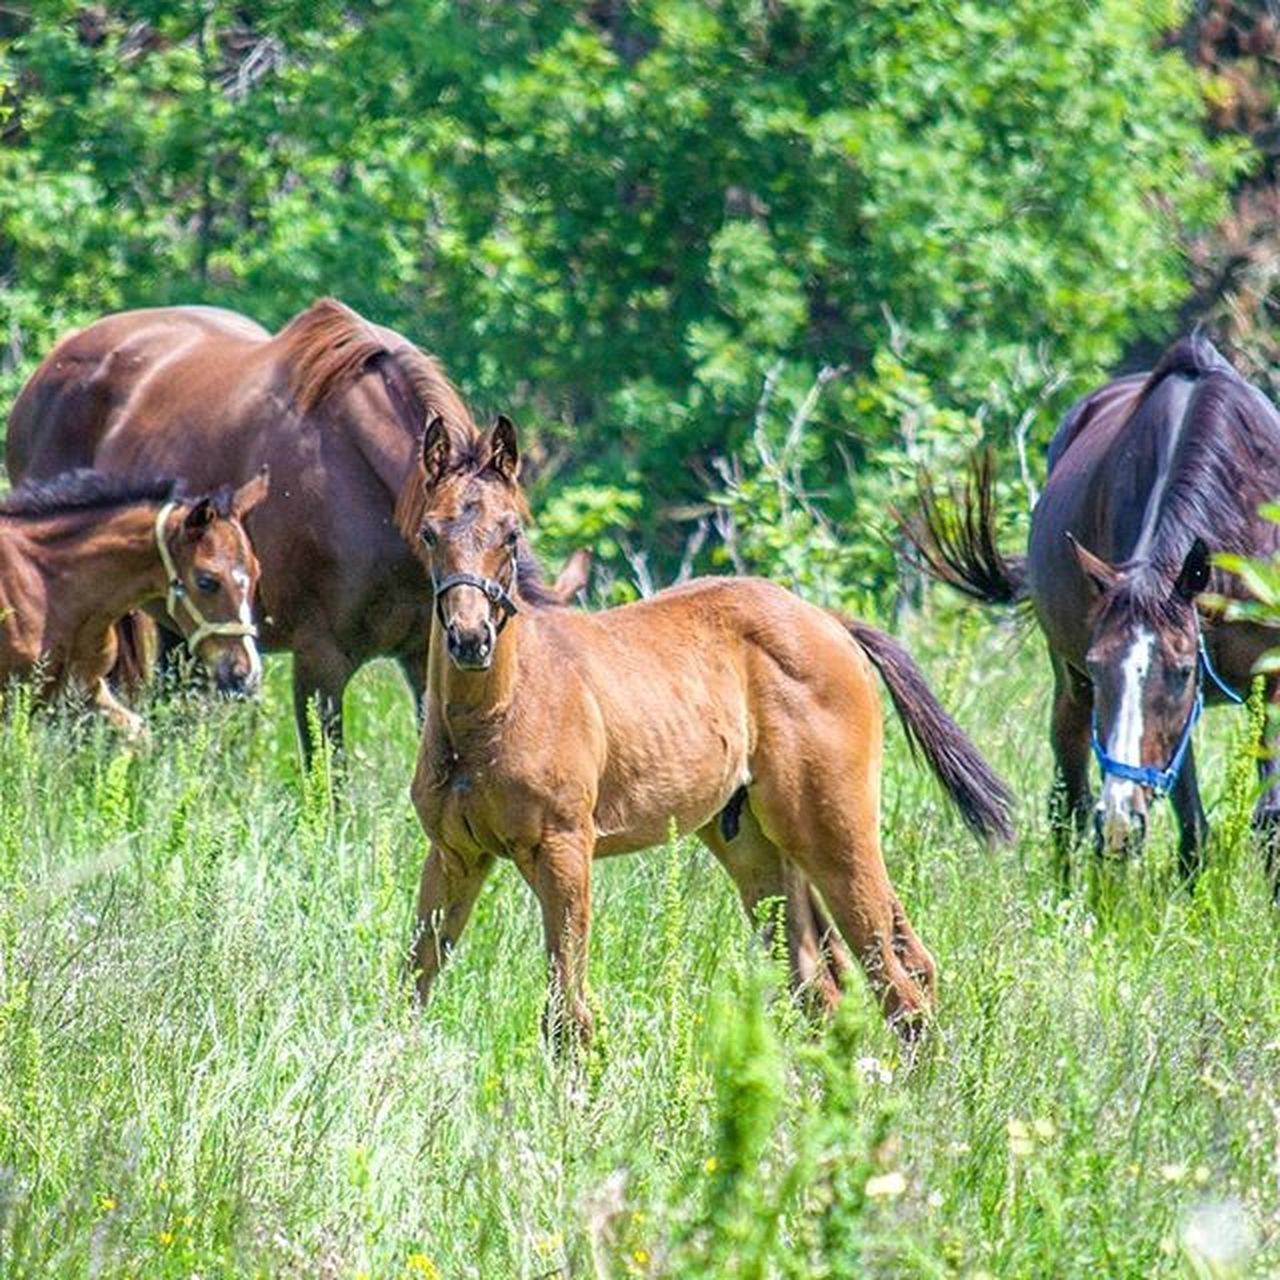 🐴Horse Racehorse Stable Equine Forest Tree Trees Tagsforlikes Baby Equestrian Black Green Run Landscape Nature Animal Animals Horses Gopro Beauty Throughbred World Boys Photooftheday Adorable animalstagsforlikeshandsomerich